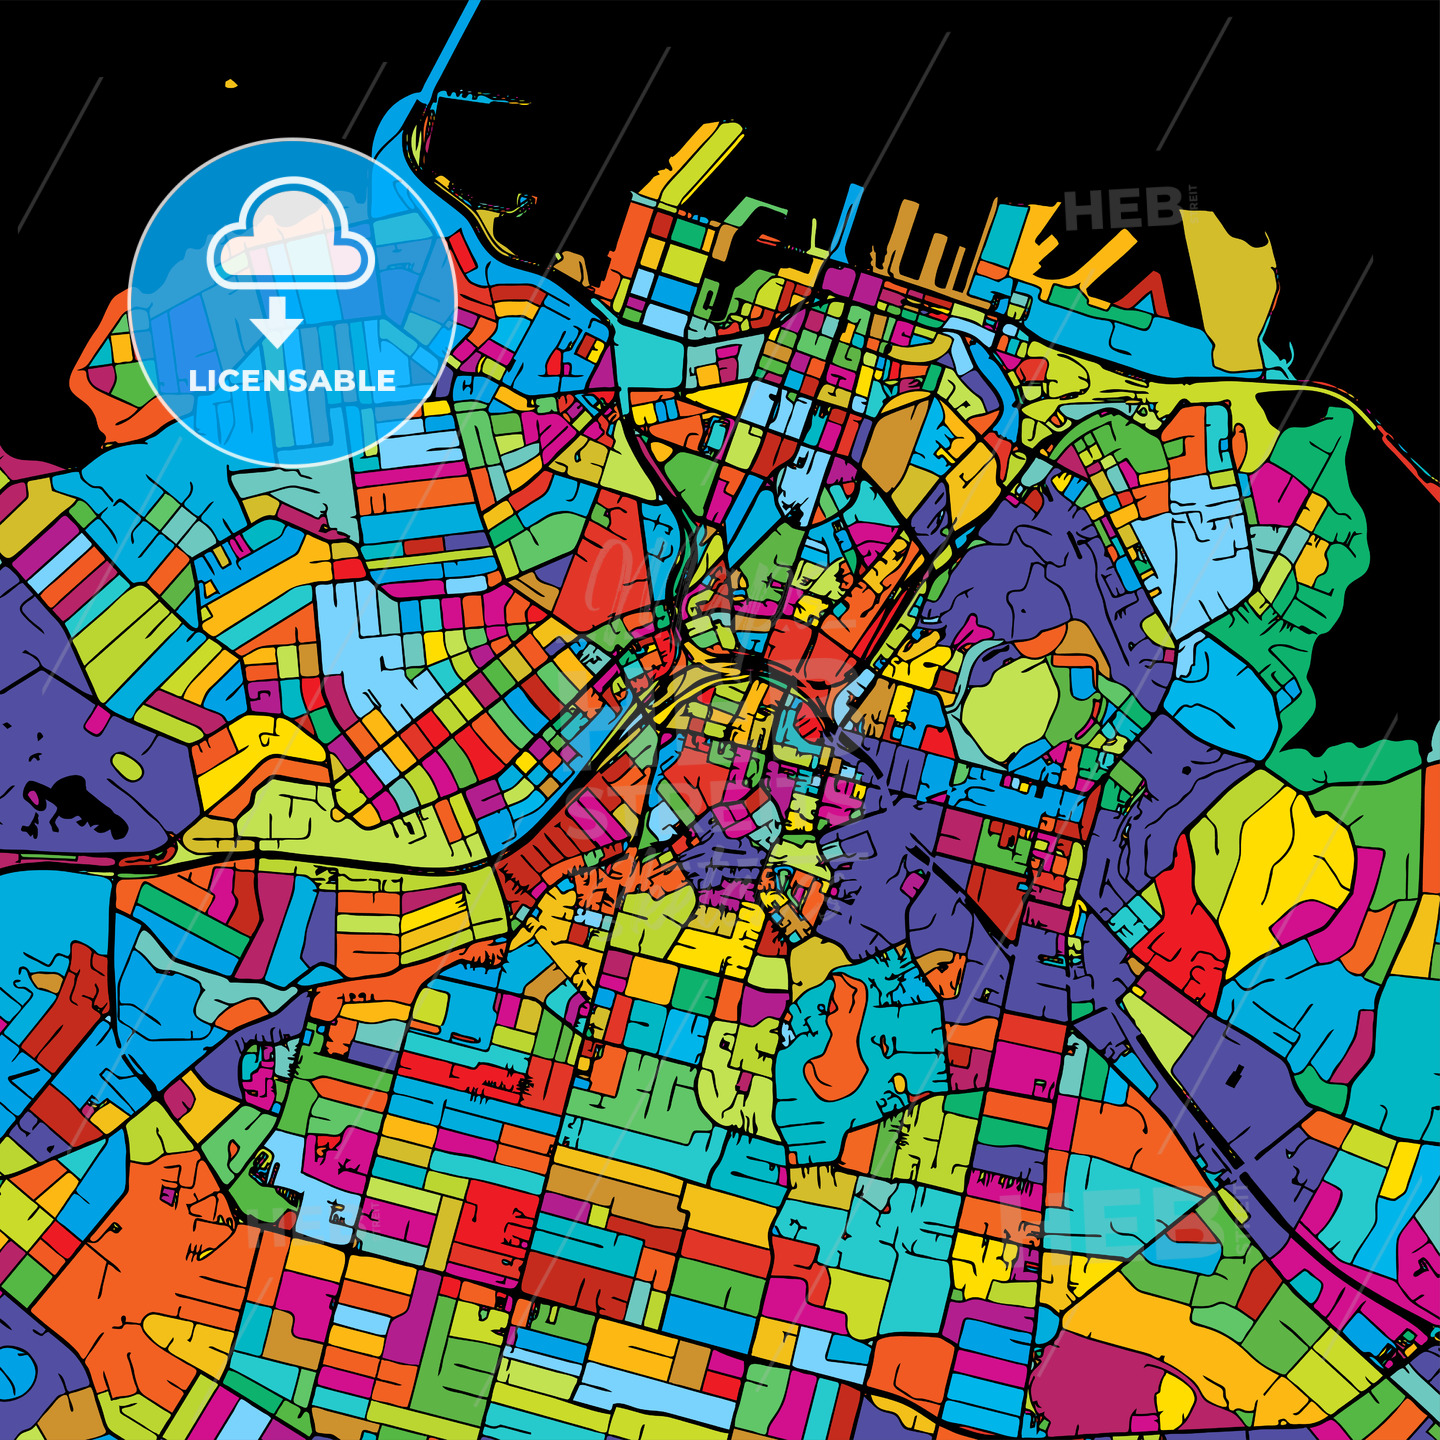 Auckland Colorful Vector Map on Black - Hebstreits